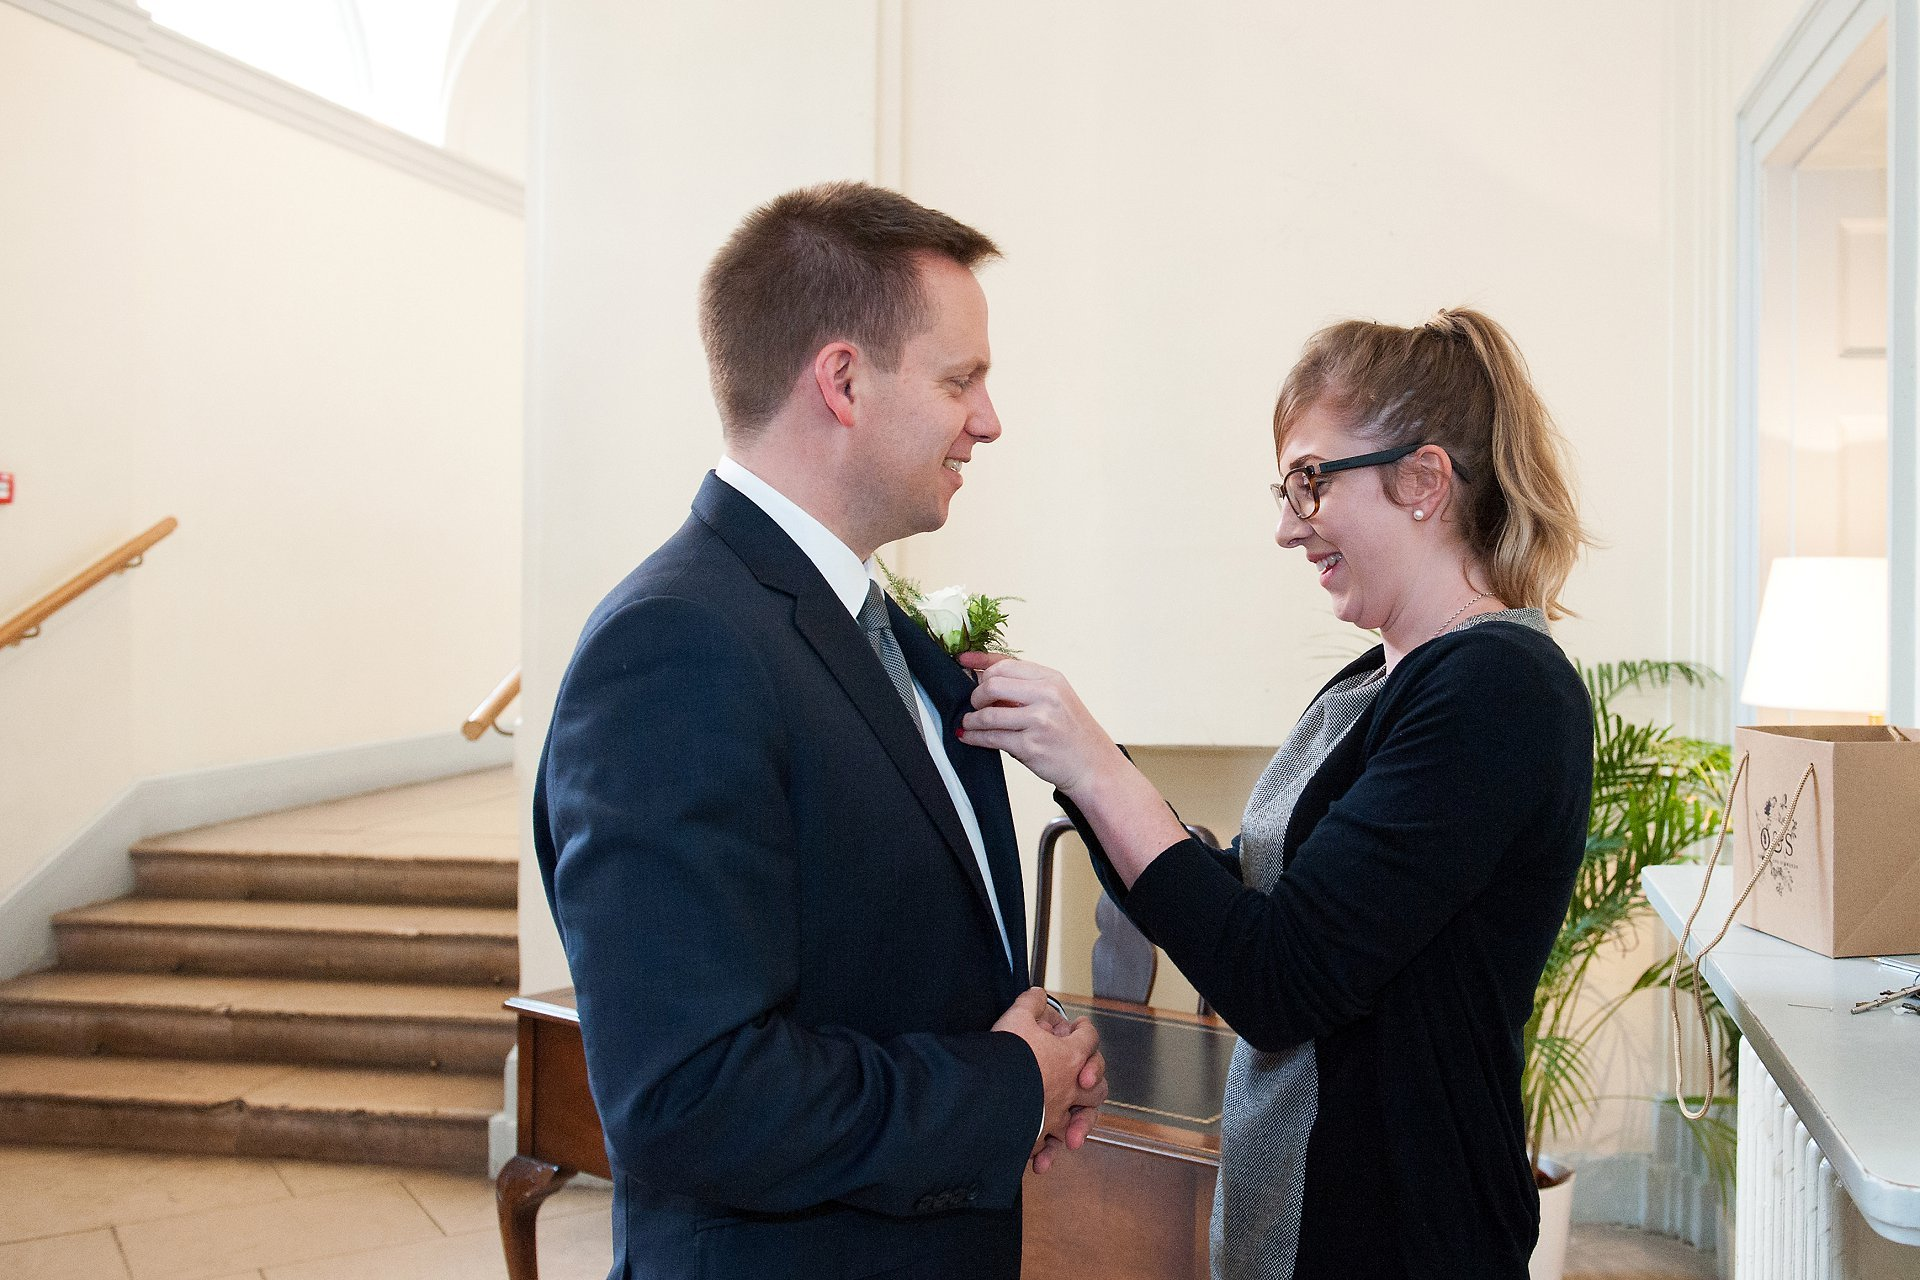 Chloe Gorham from Bovingdons Caterers fixes teh groom's buttonhole before his civil wedding ceremony